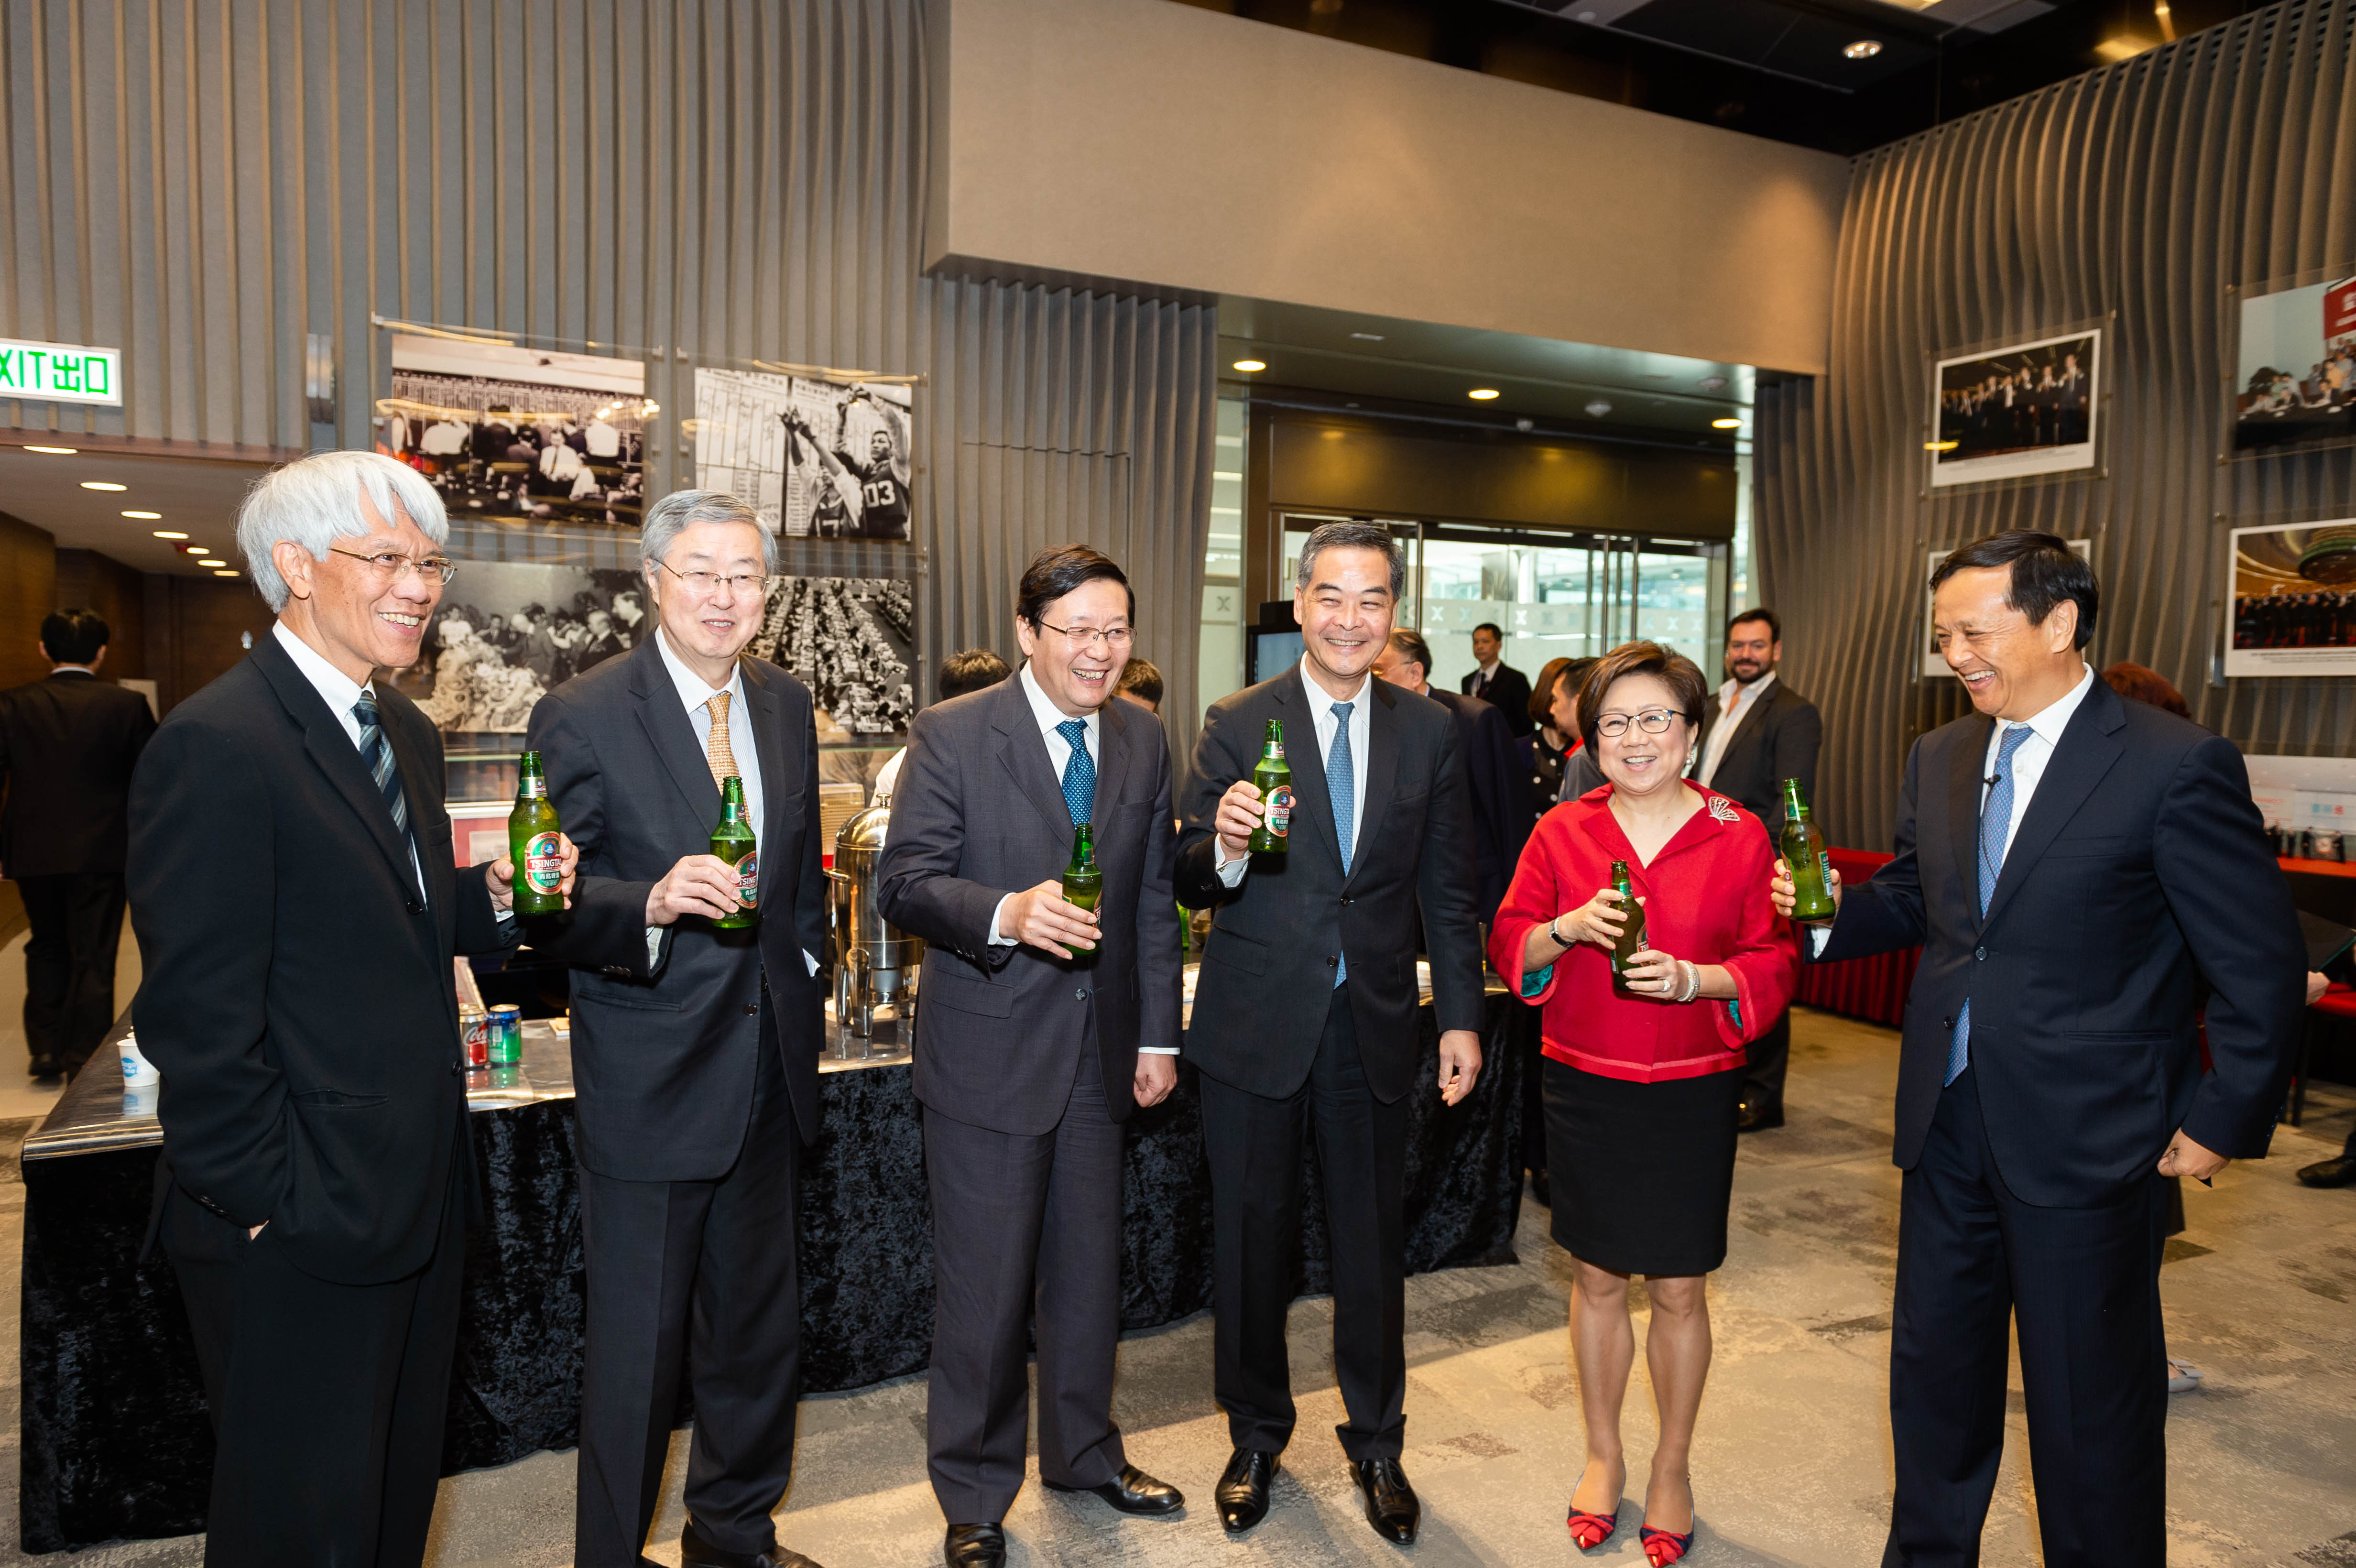 (From left) Joseph Yam, Zhou Xiaochuan, Lou Jiwei, C Y Leung, Laura Cha, and Charles Li enjoying some Tsingtao Beer to celebrate 25 years of H-share listings in Hong Kong.  Tsingtao Brewery was the first H-share company to list in Hong Kong. Its listing in 1993 was a major milestone in China's opening up.